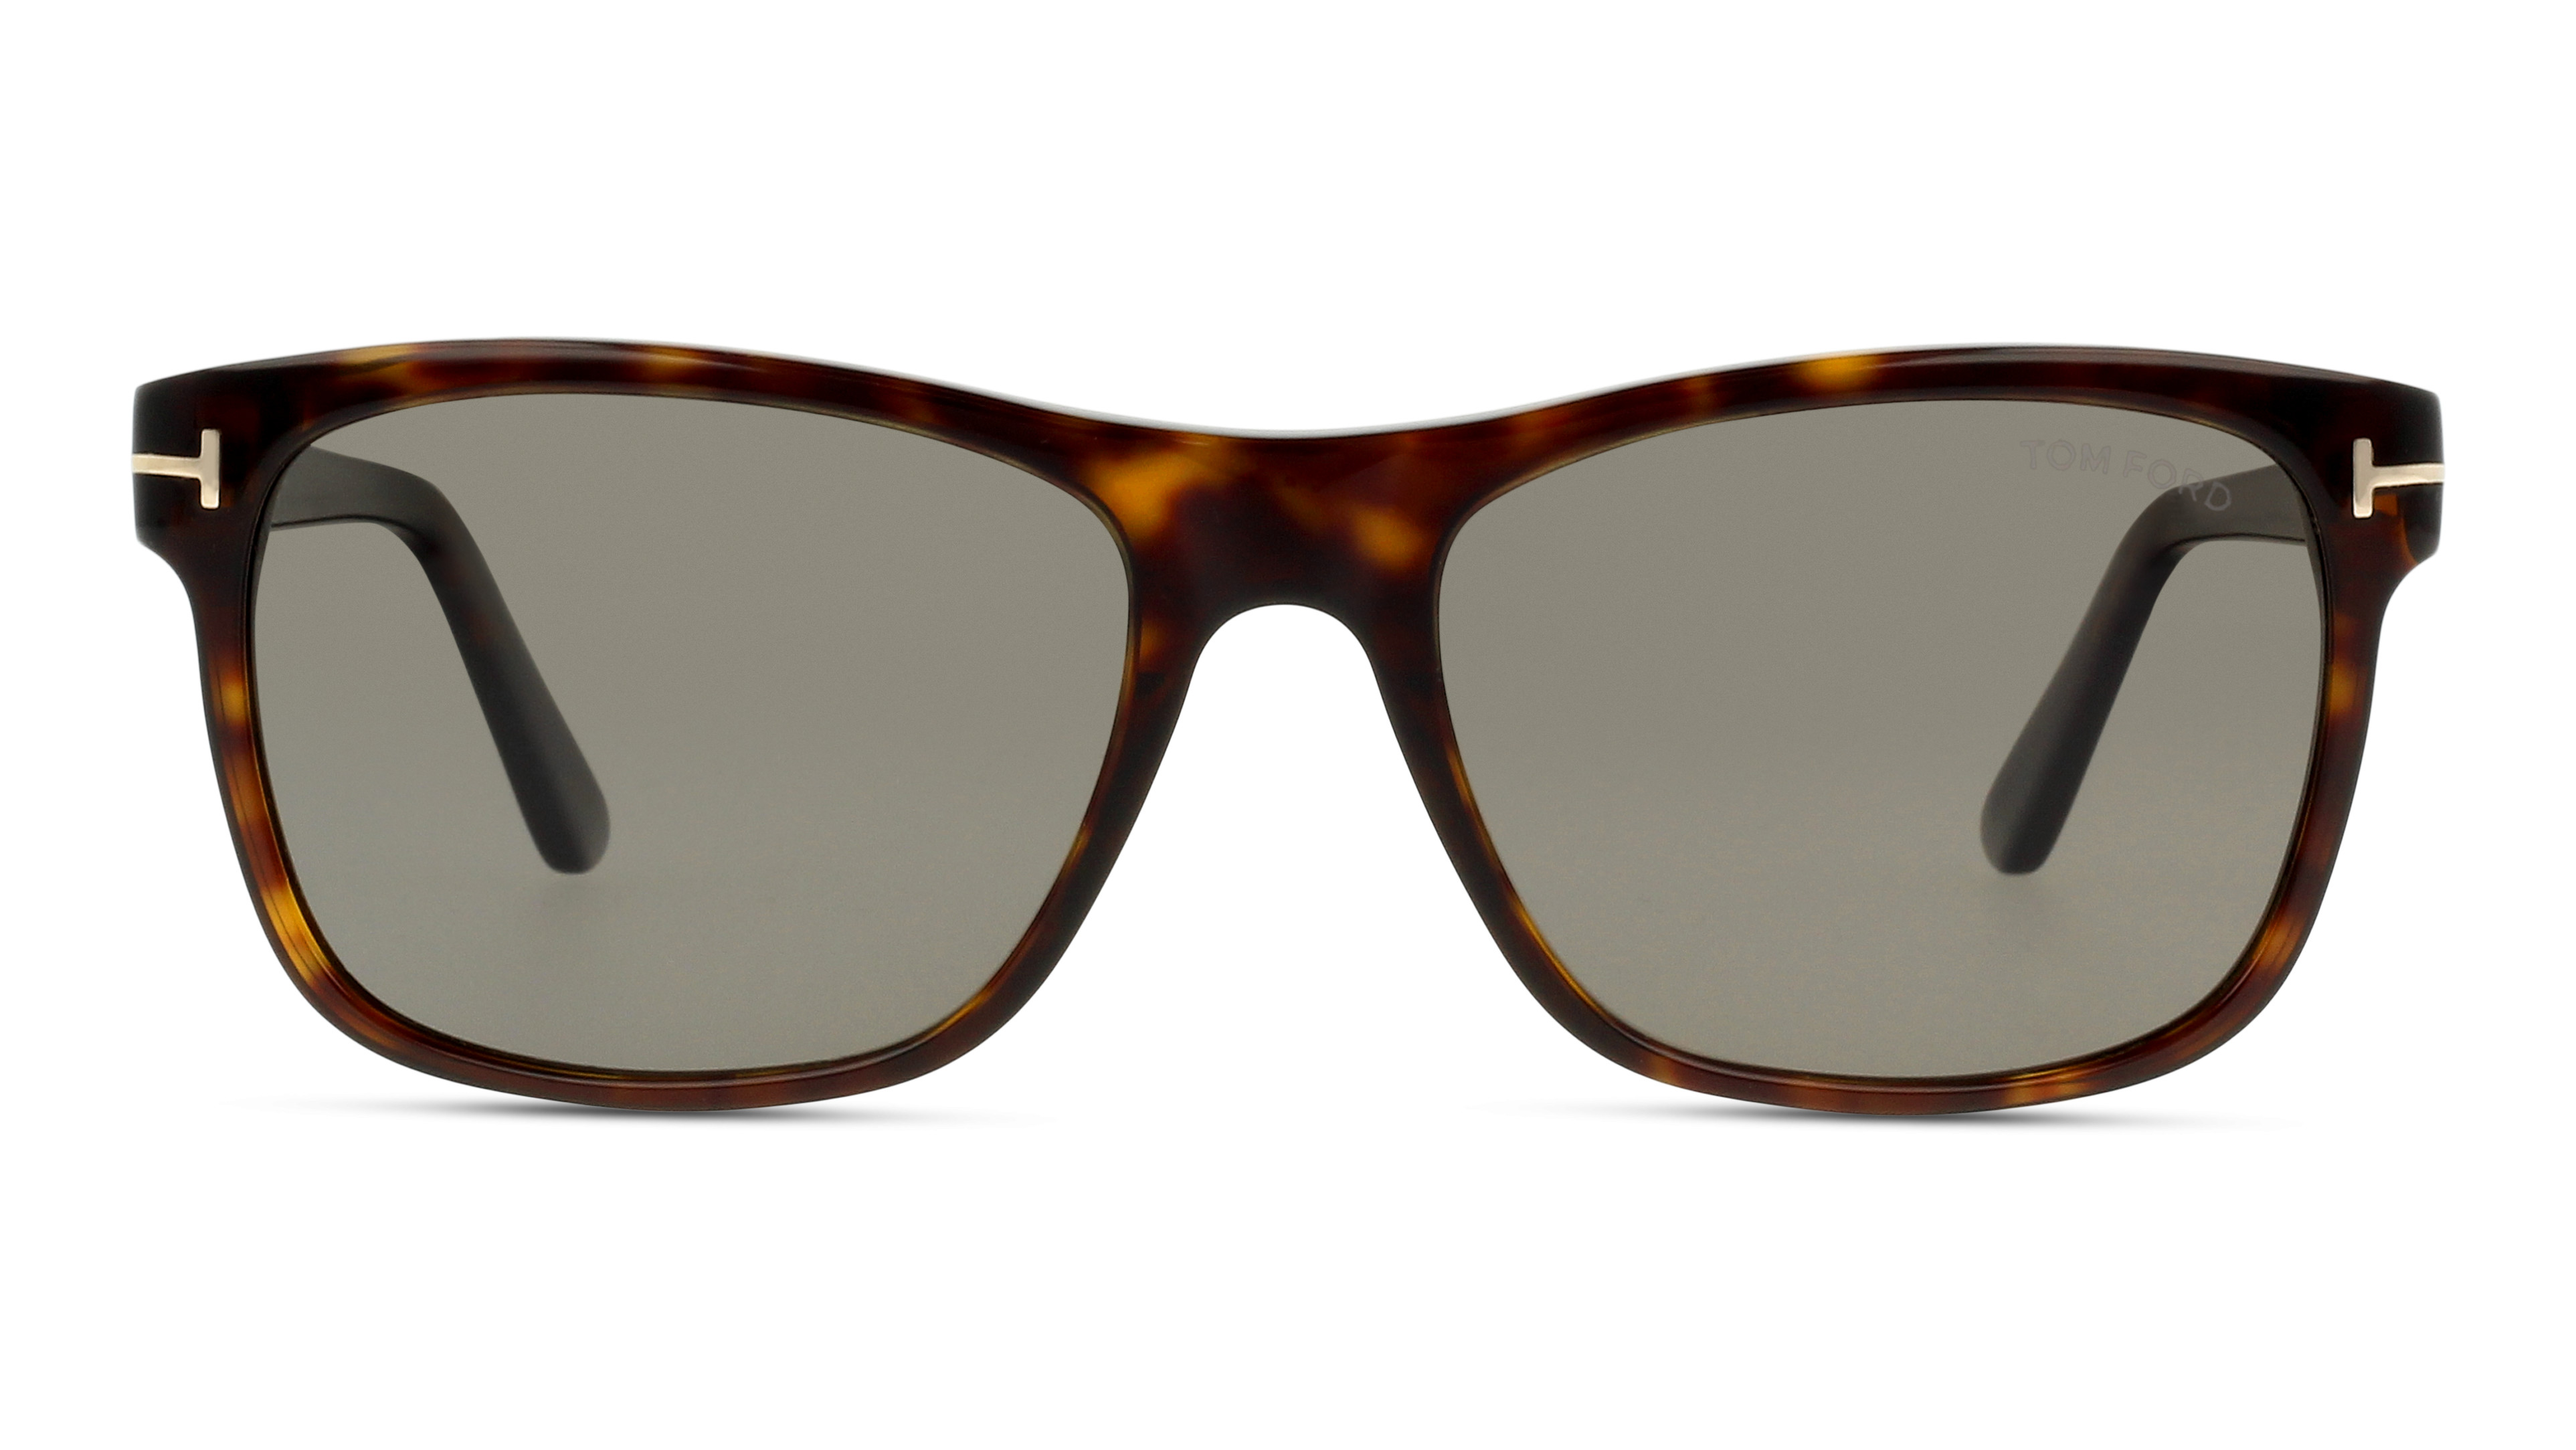 889214028501_front_TomFord